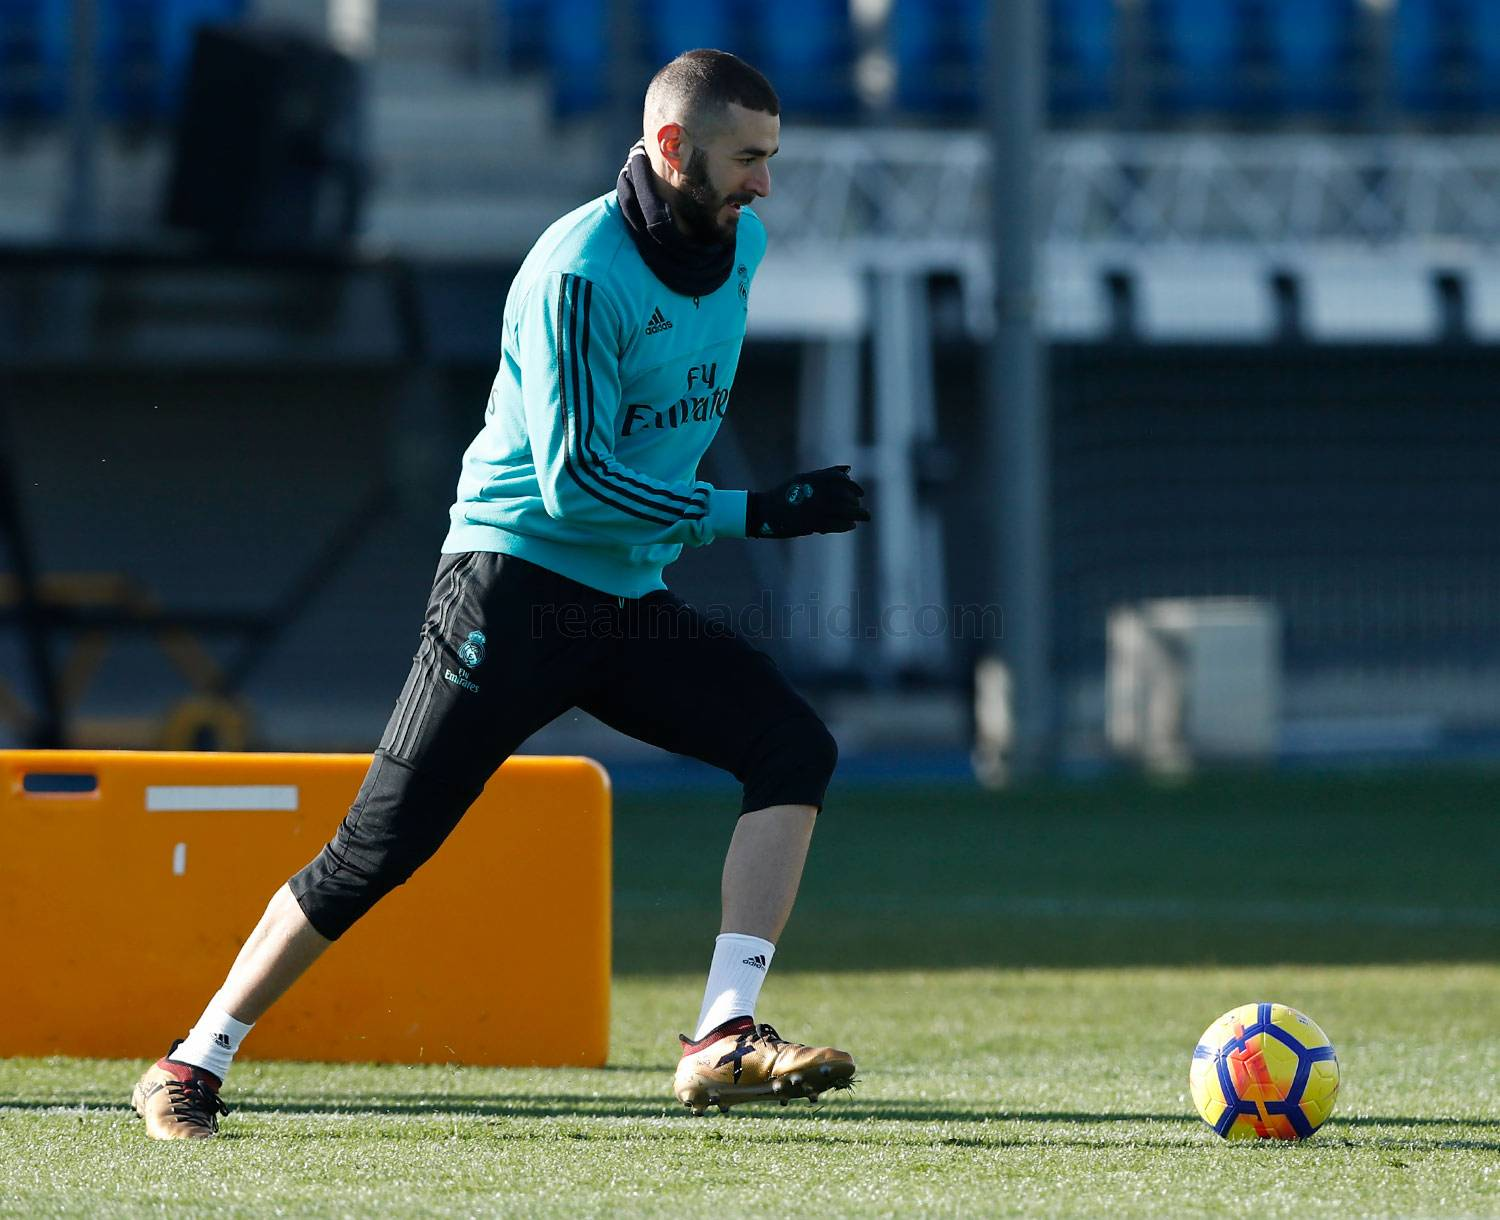 Real Madrid - Entrenamiento del Real Madrid - 12-01-2018